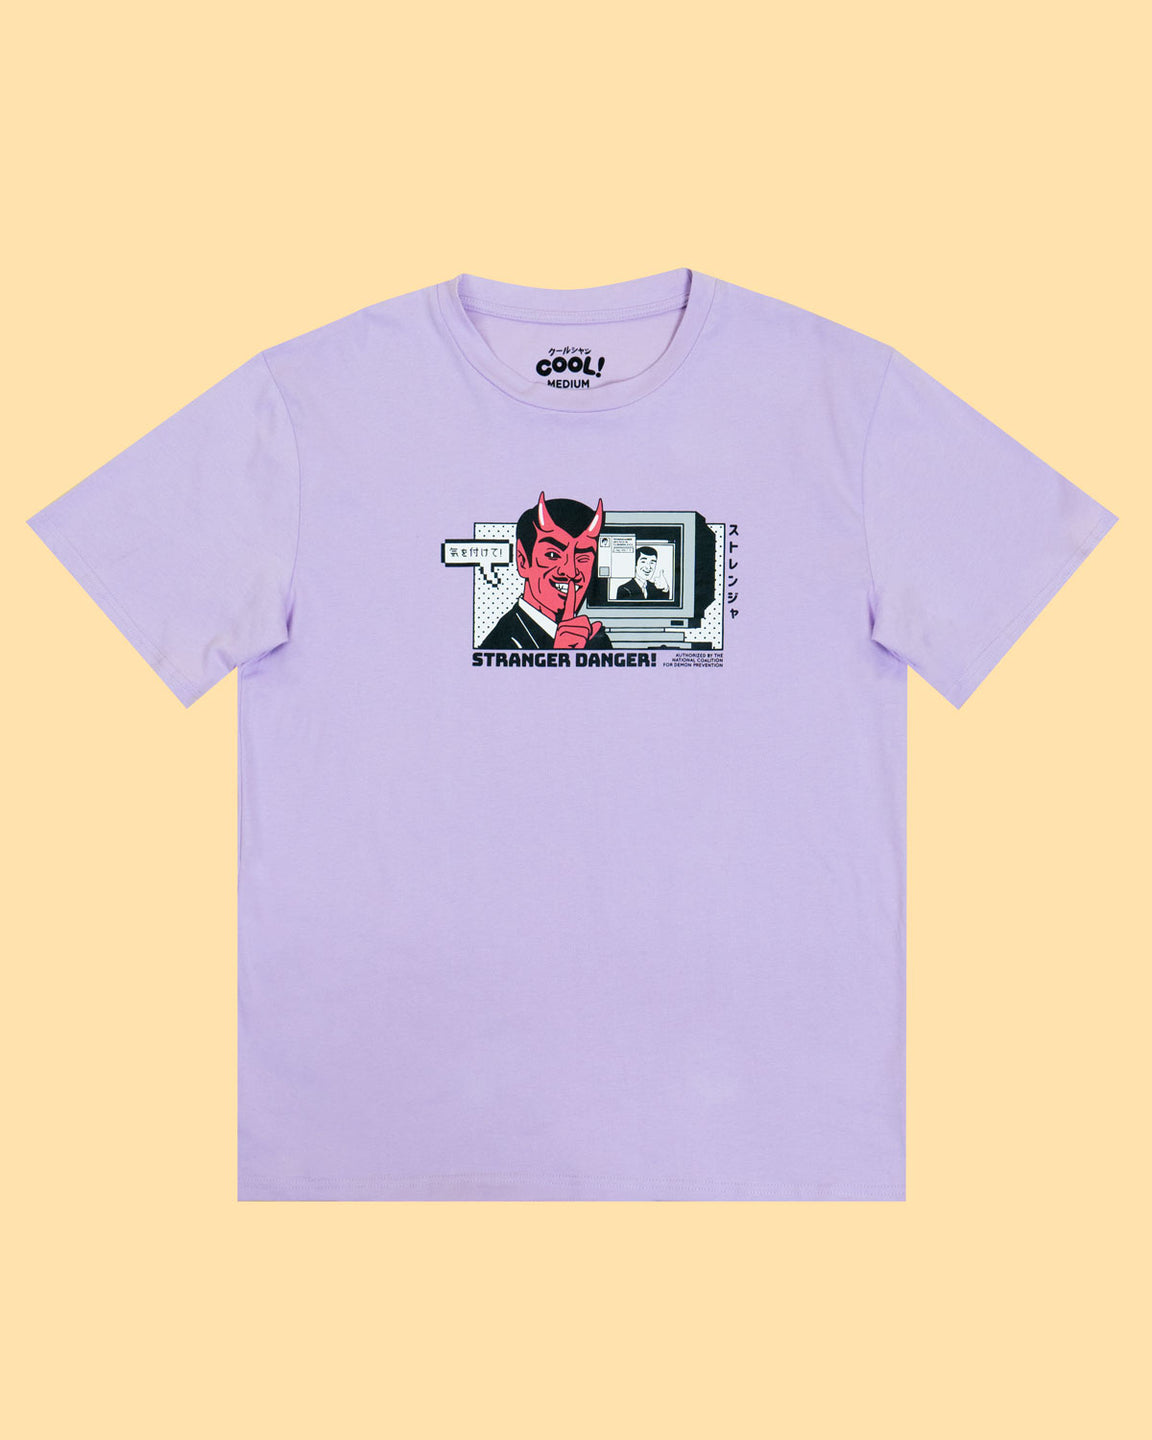 The Stranger Danger Tee